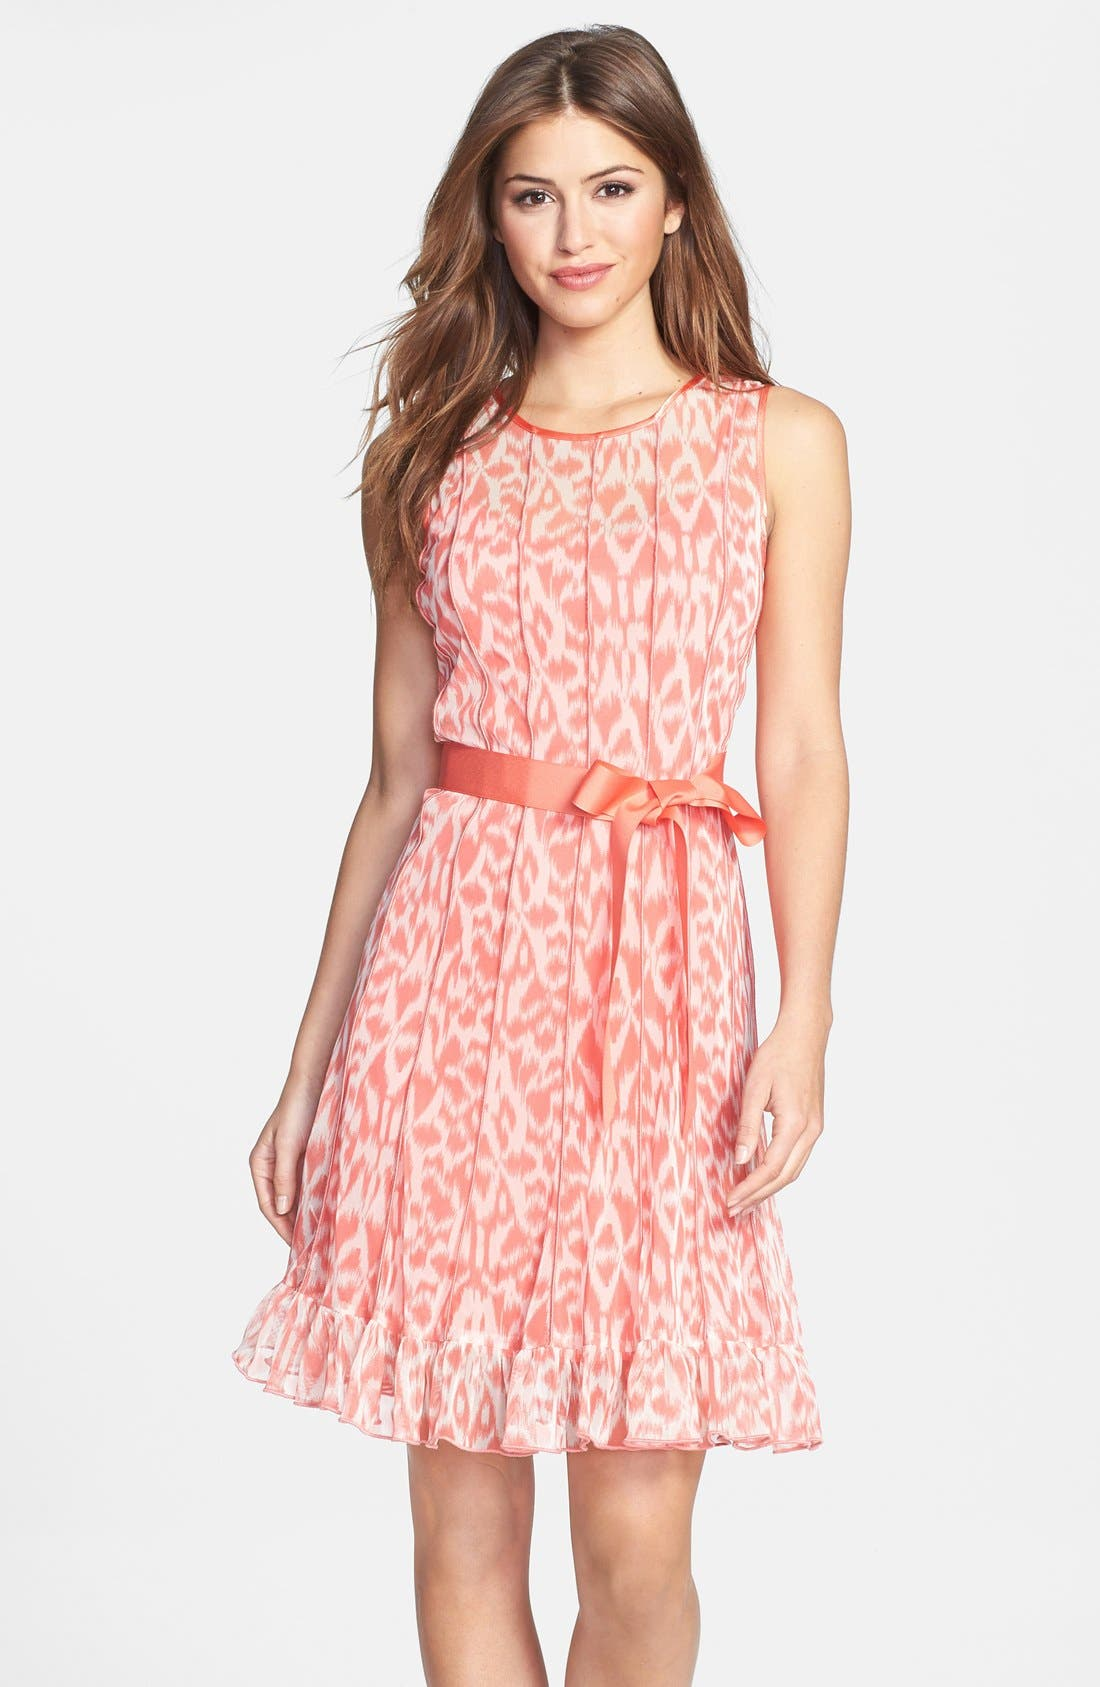 Alternate Image 1 Selected - Eliza J Print Pintuck Chiffon Fit & Flare Dress (Petite)